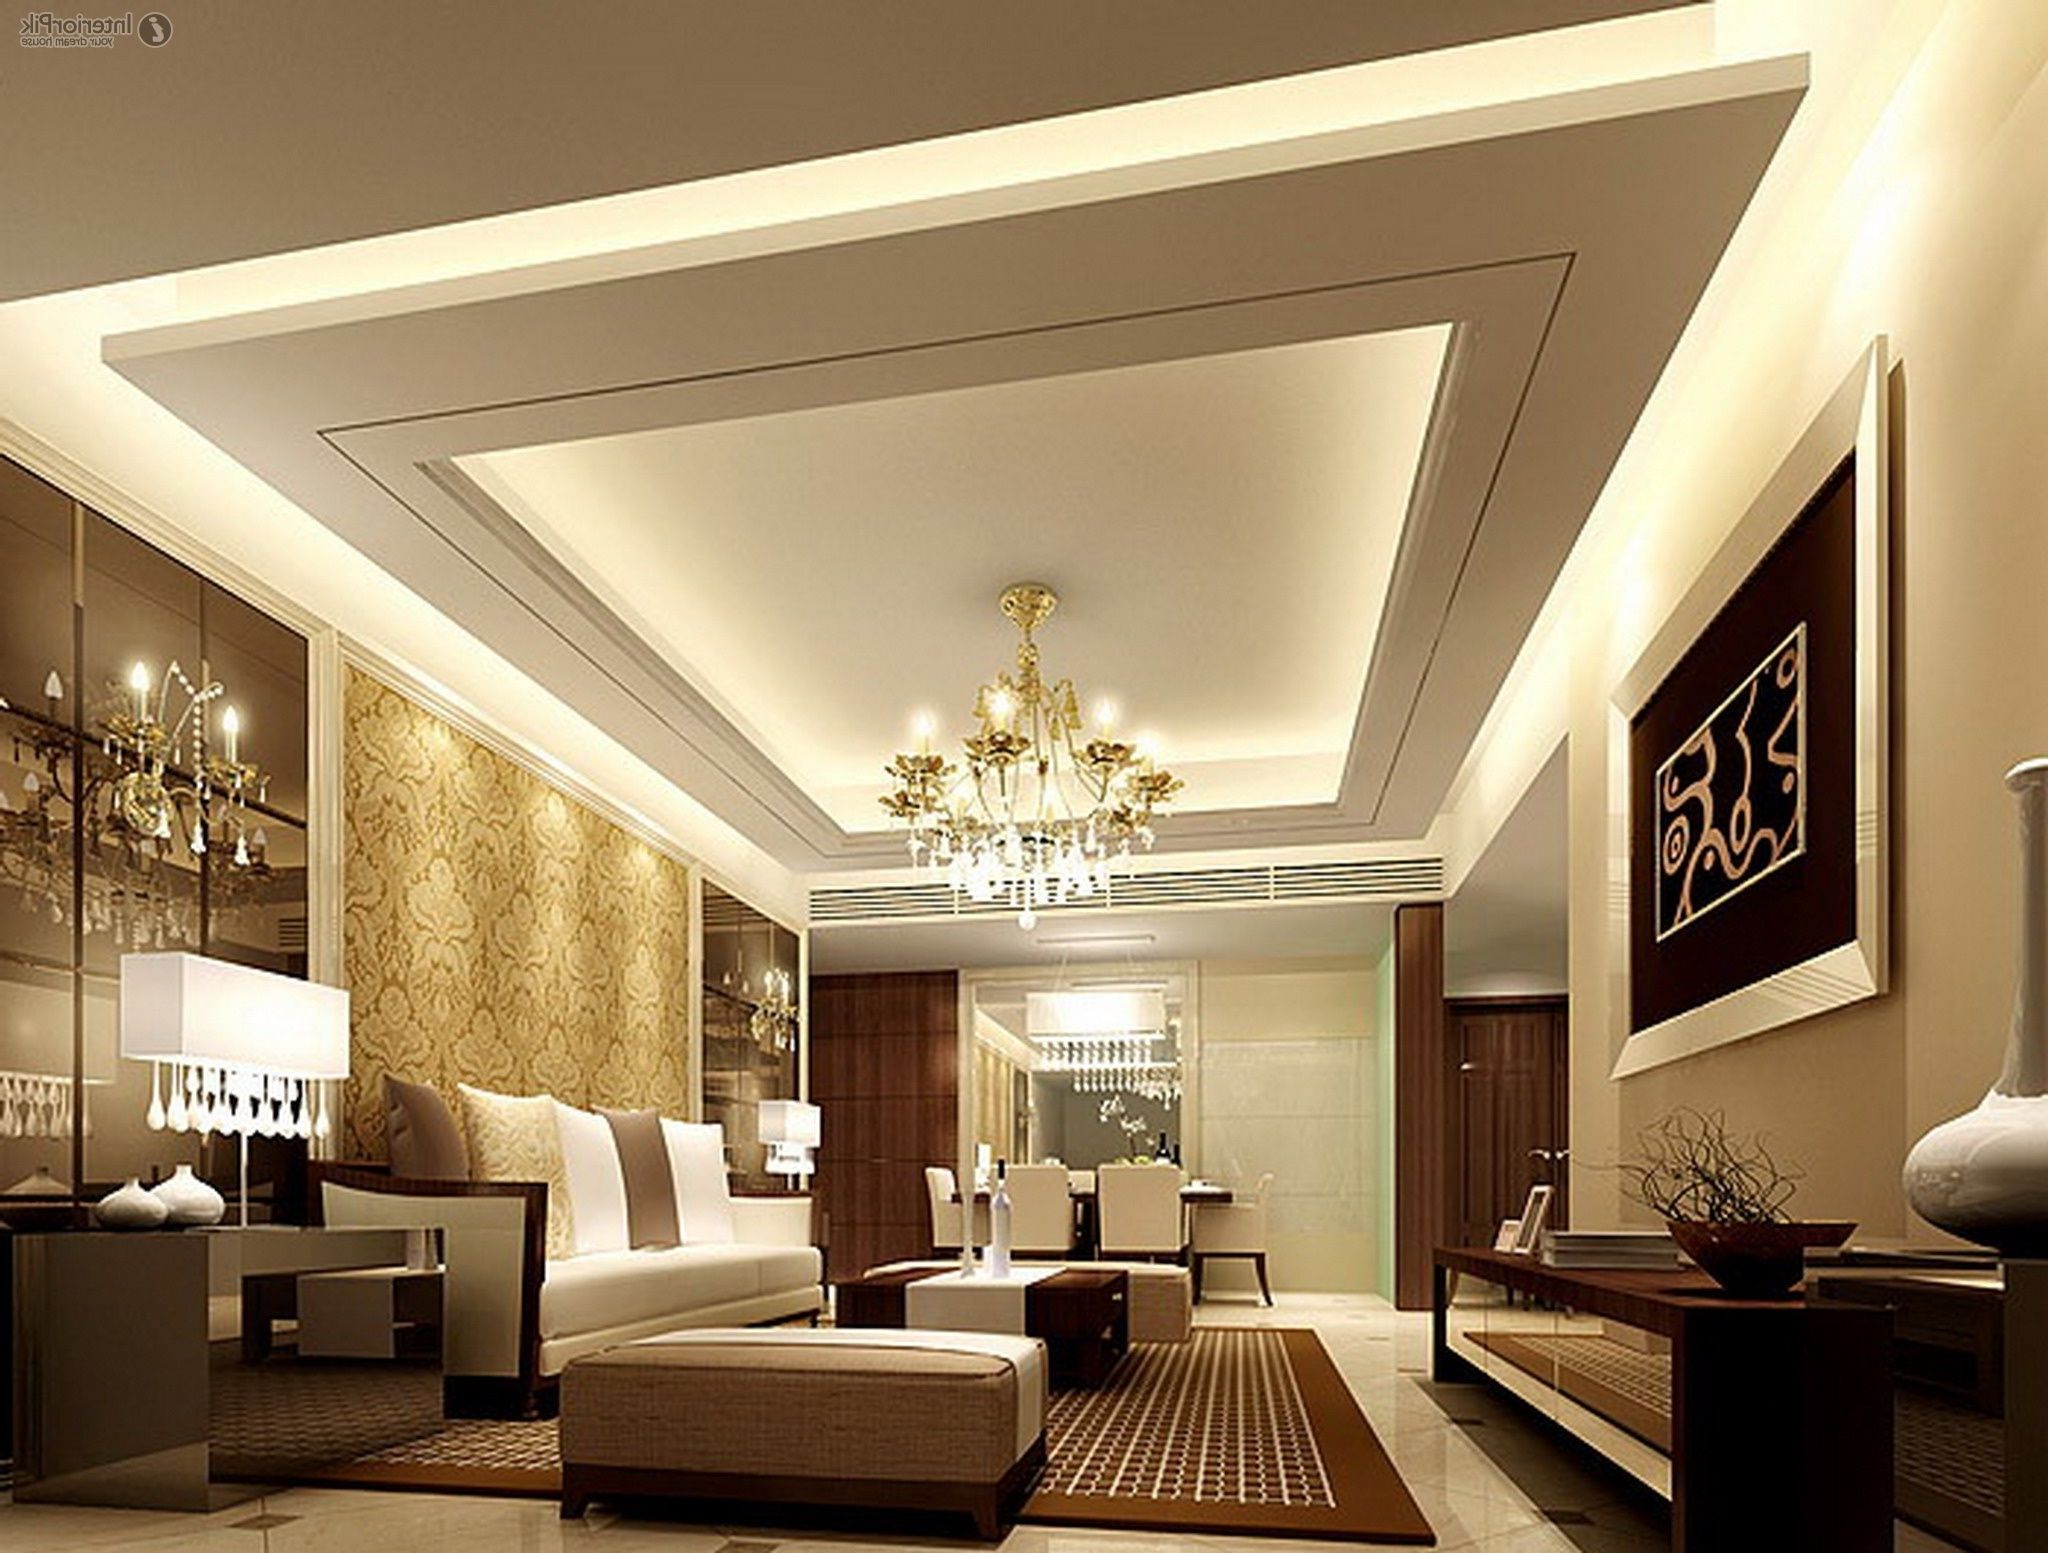 Best Design For Living Room Awesome Gypsum Ceiling Design For Living Room Lighting Home Decorate Best Review